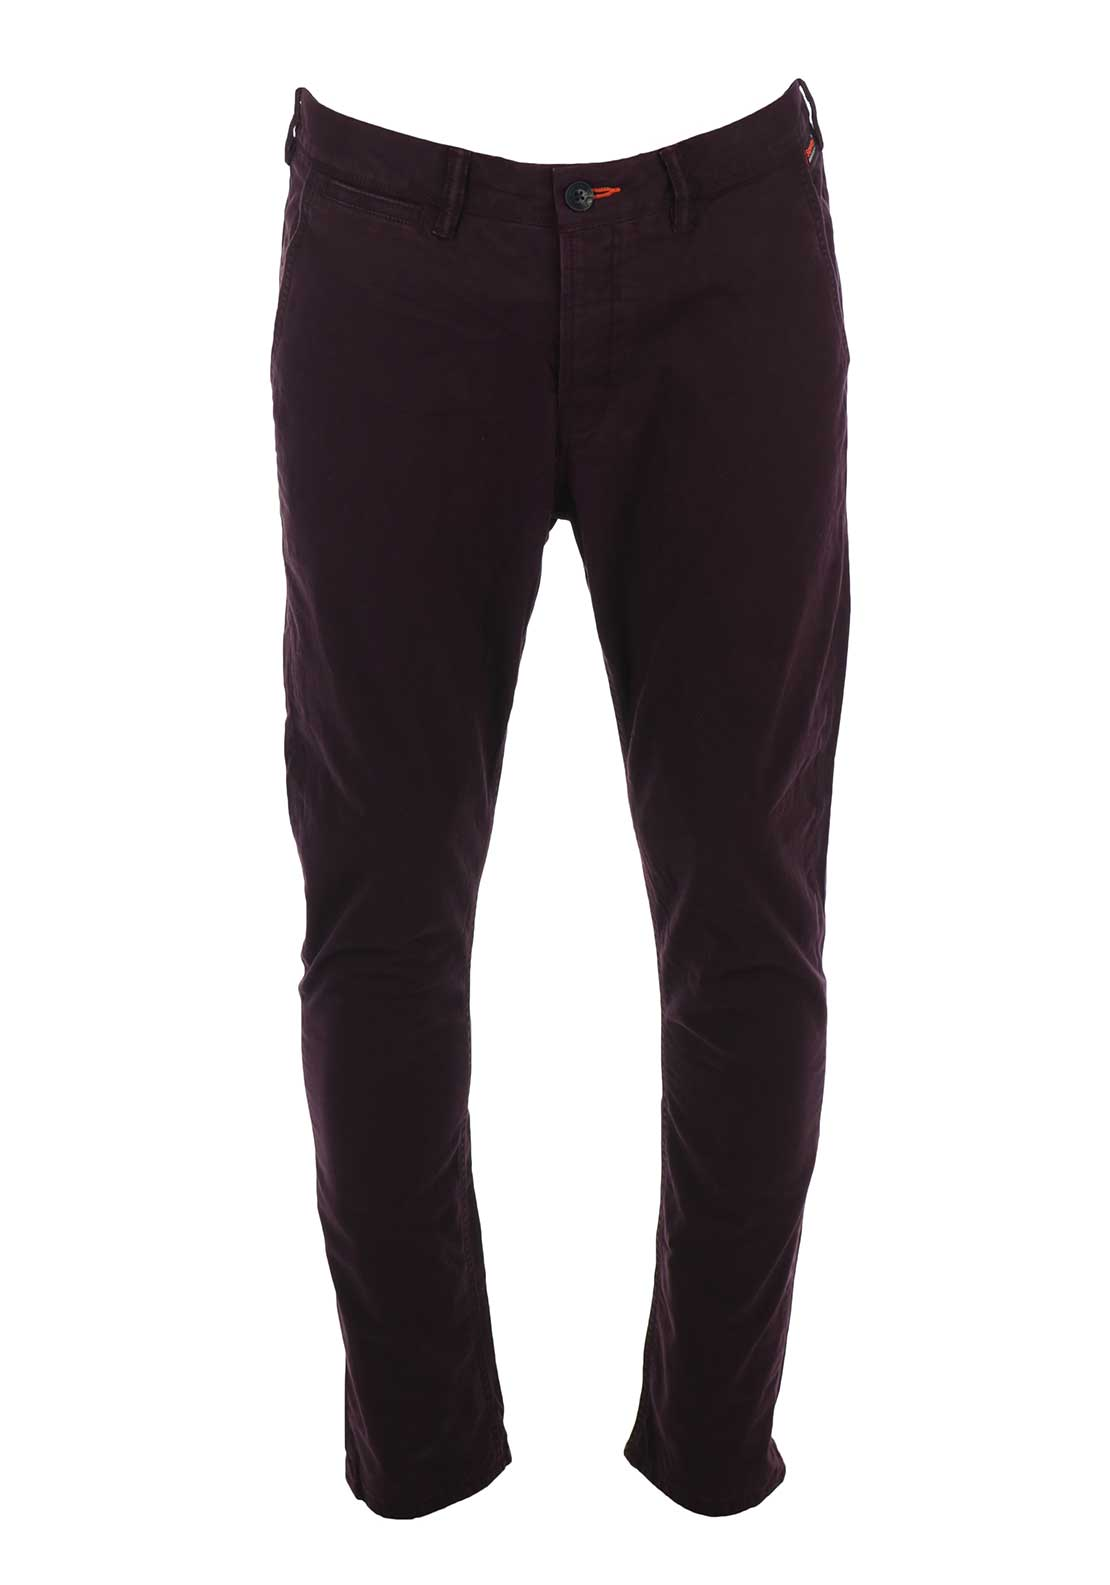 Superdry Mens Rookie Chino Trousers, Burgundy